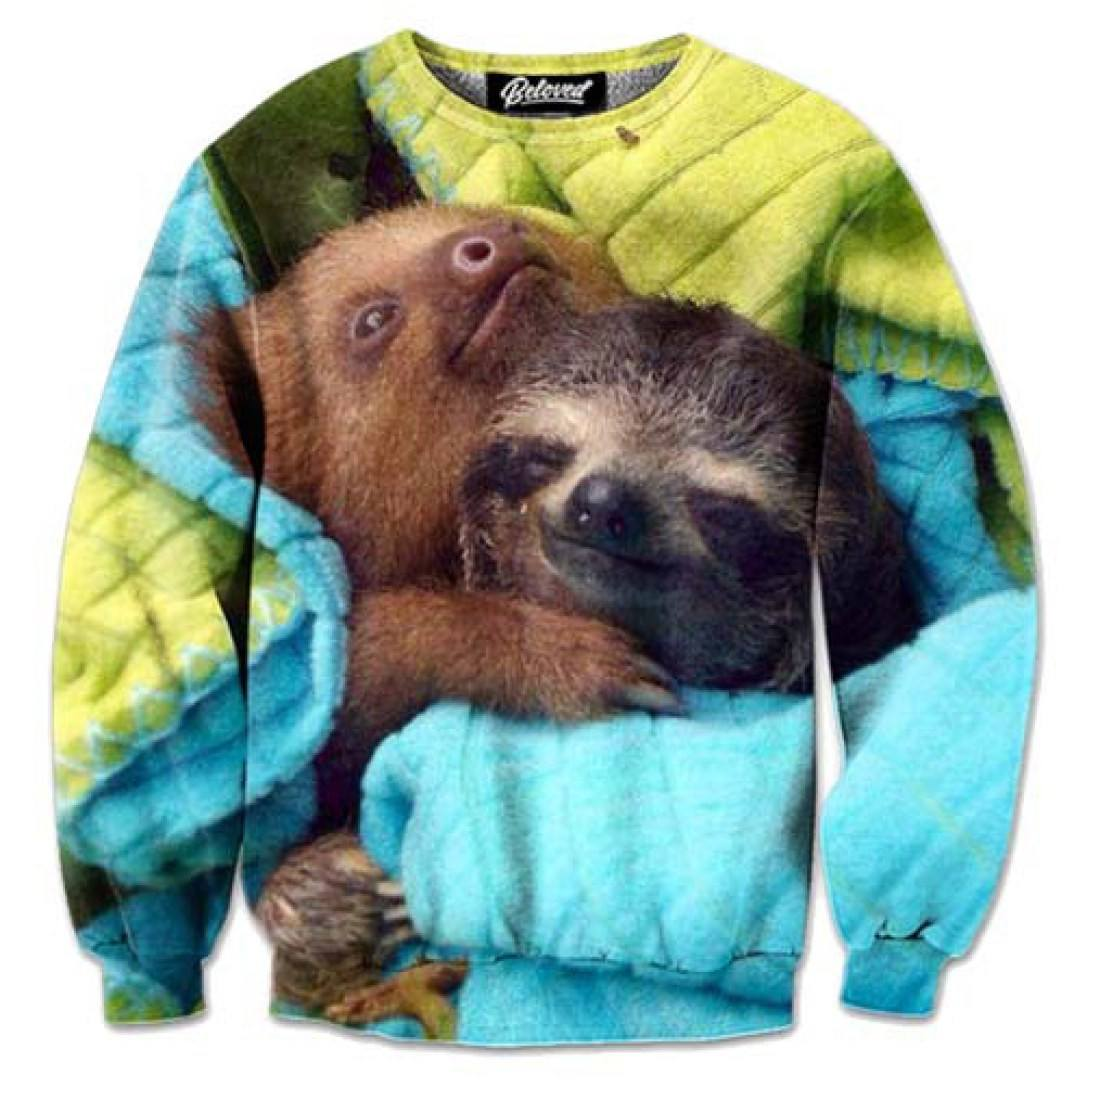 Adorable Cuddling Baby Sloths Graphic Print Unisex Pullover Sweater